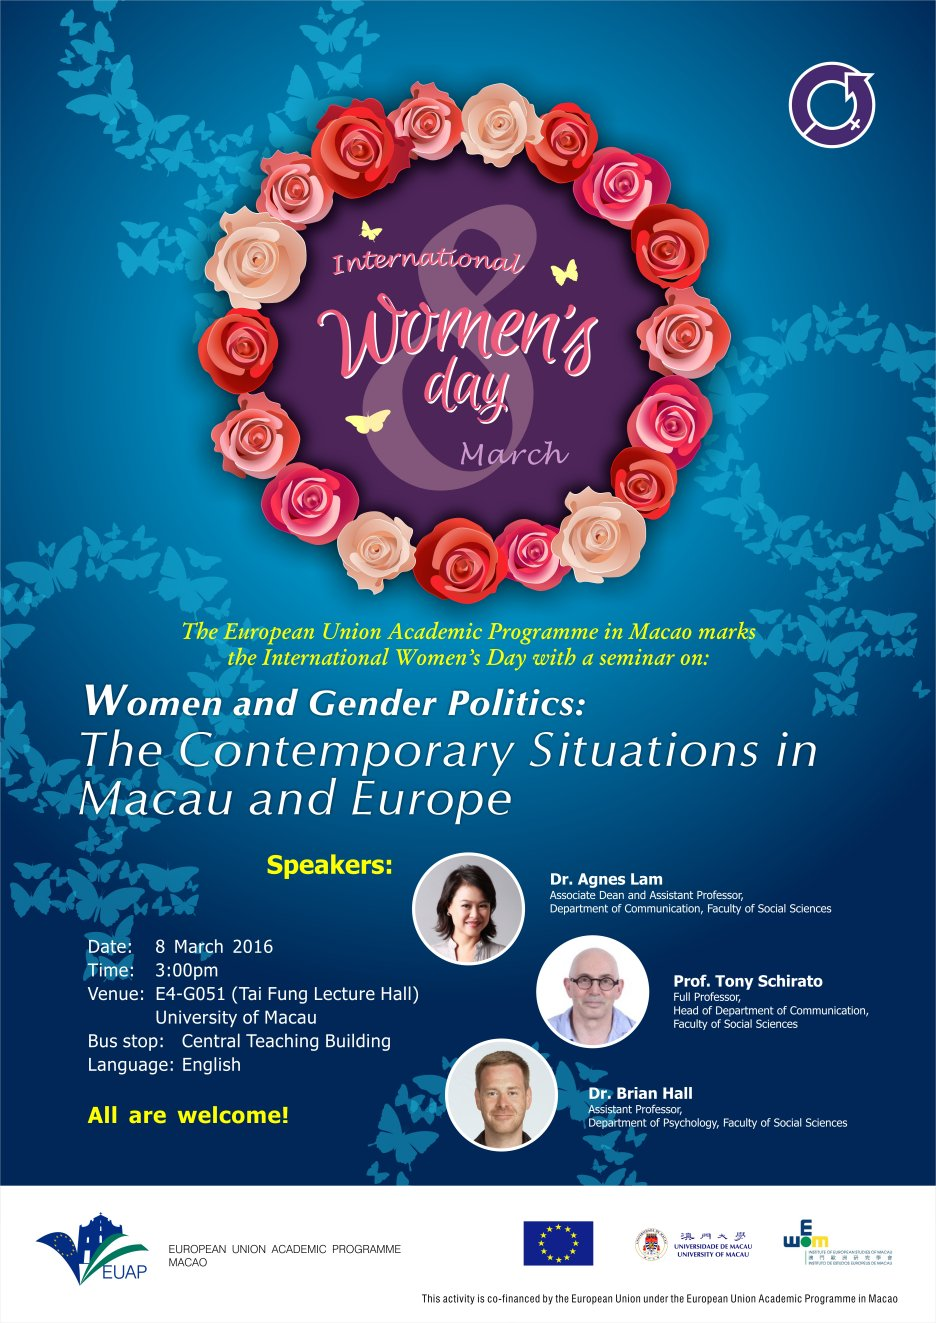 The seminar on 'Women and Gender Politics: The Contemporary Situations in Europe and Macau'